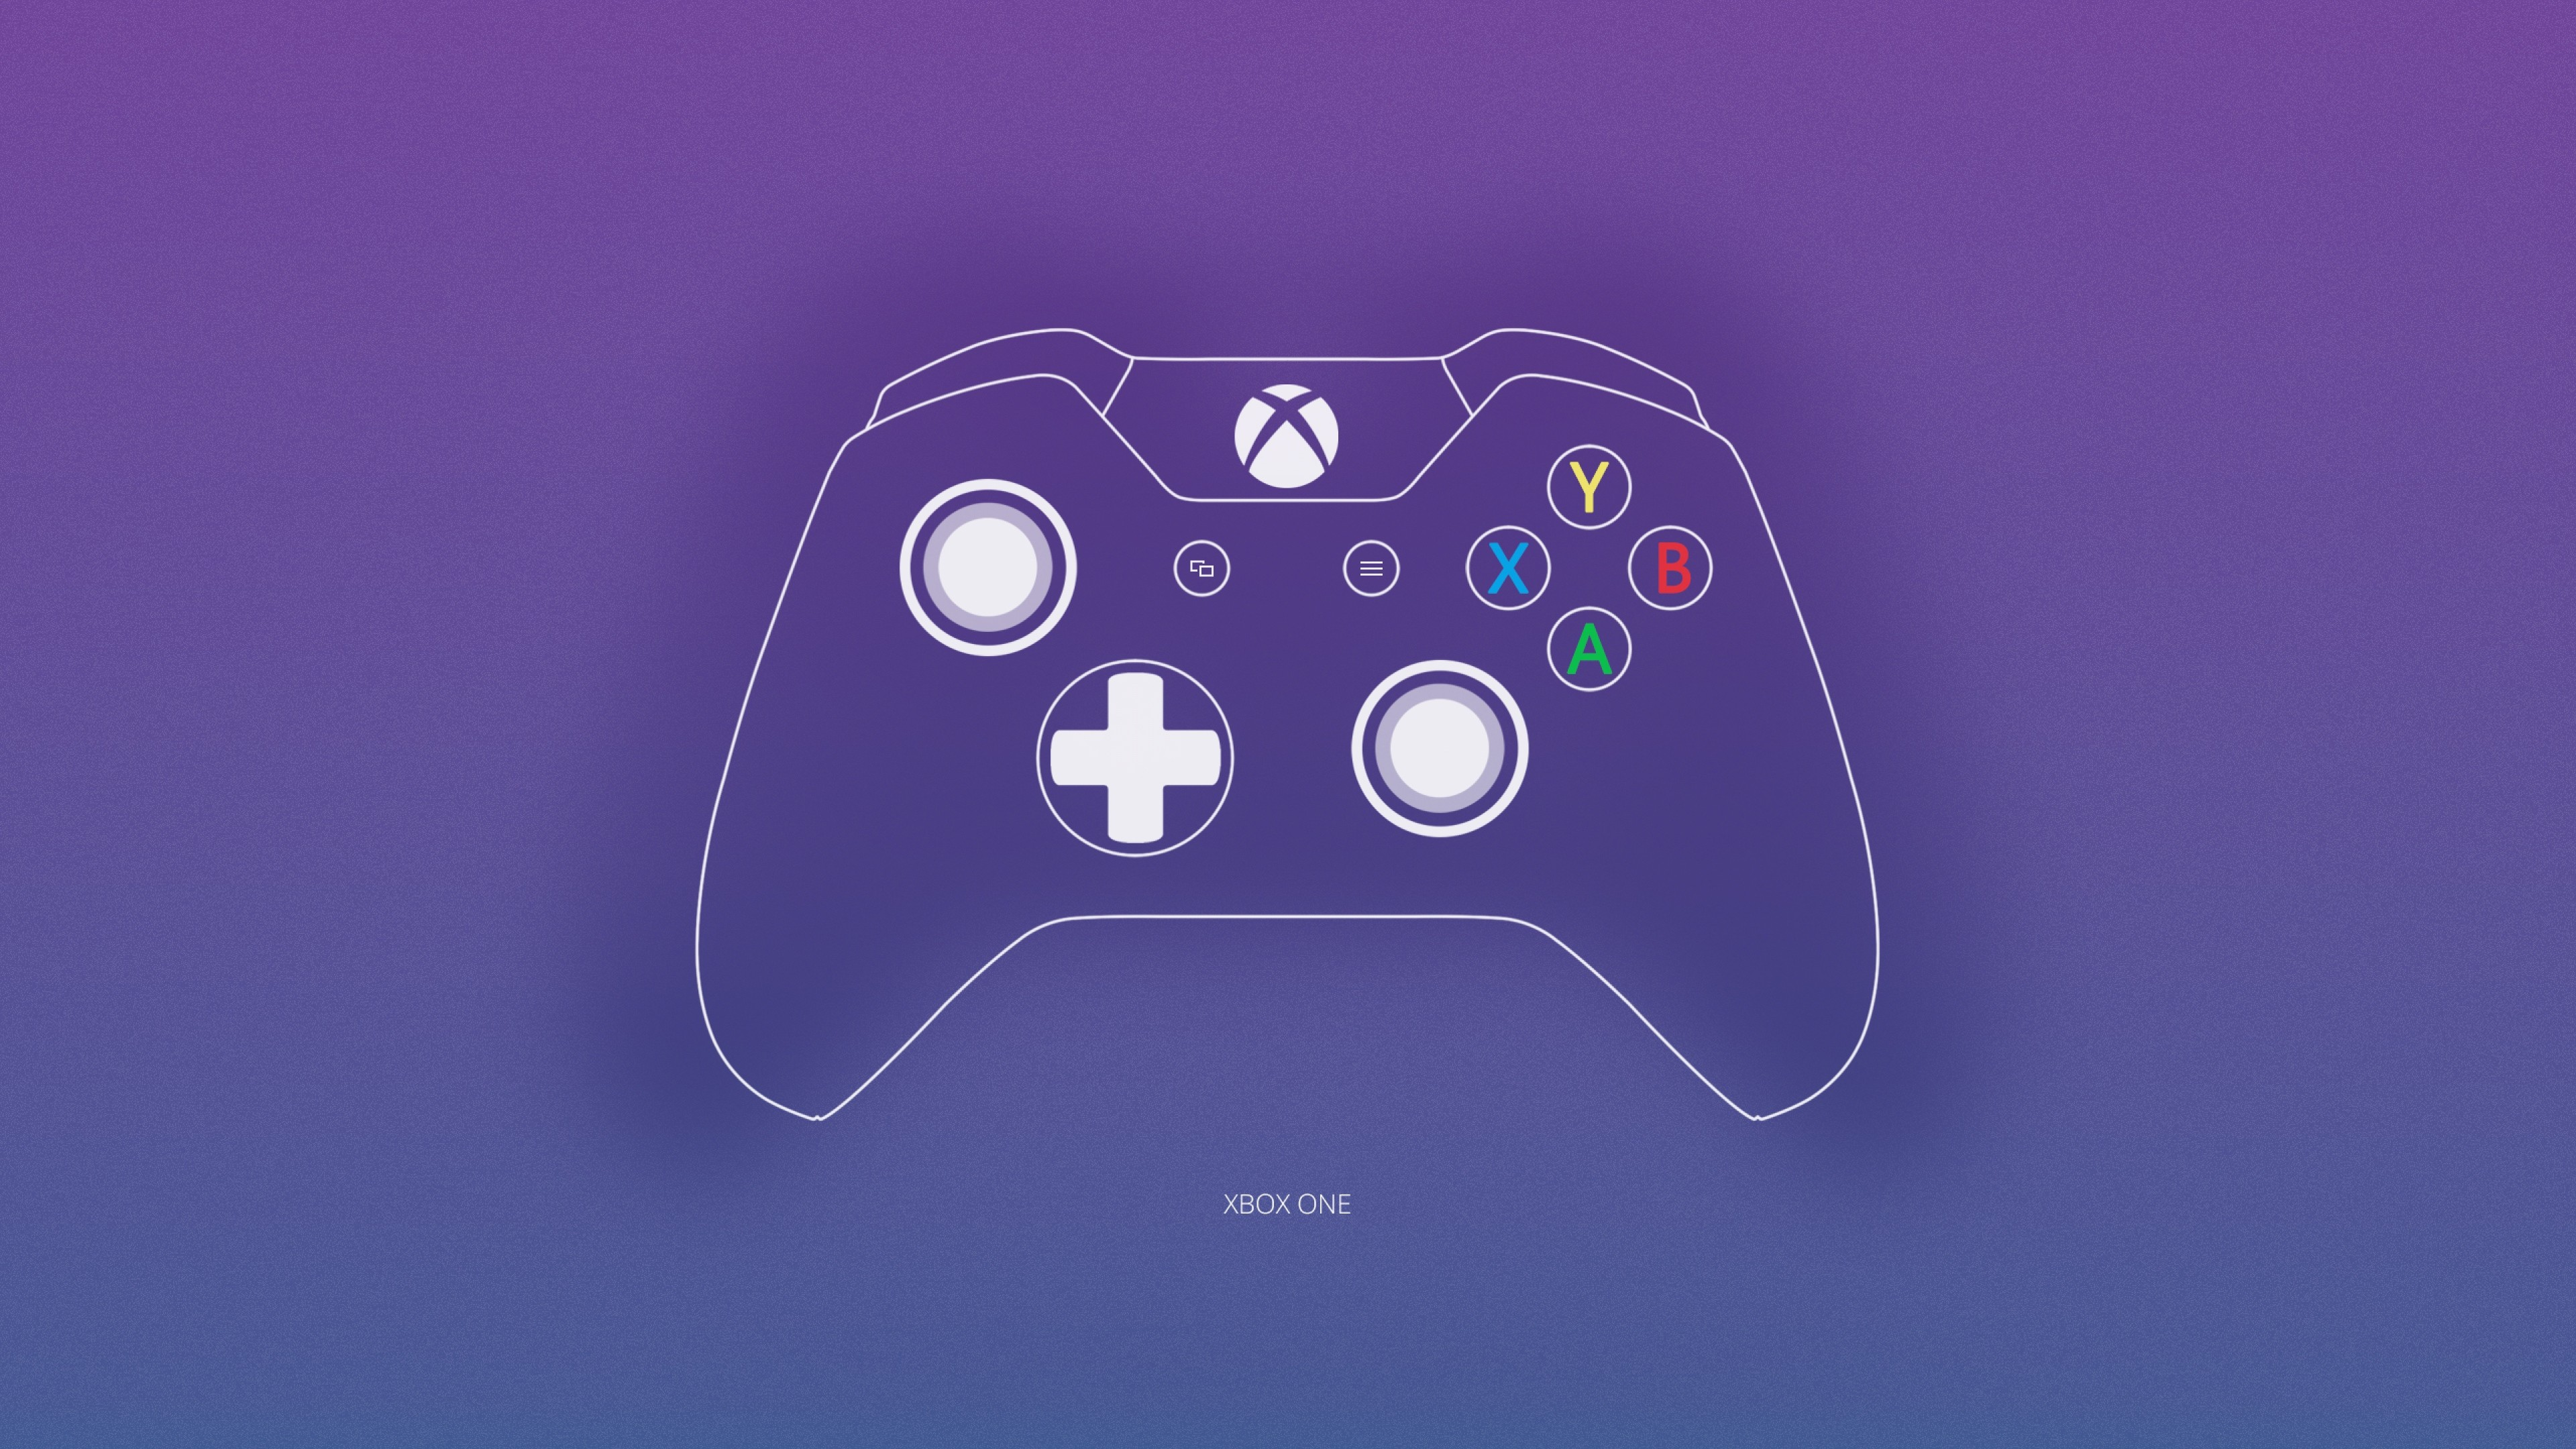 Wallpapers for xbox one 80 images - Xbox one wallpaper ...